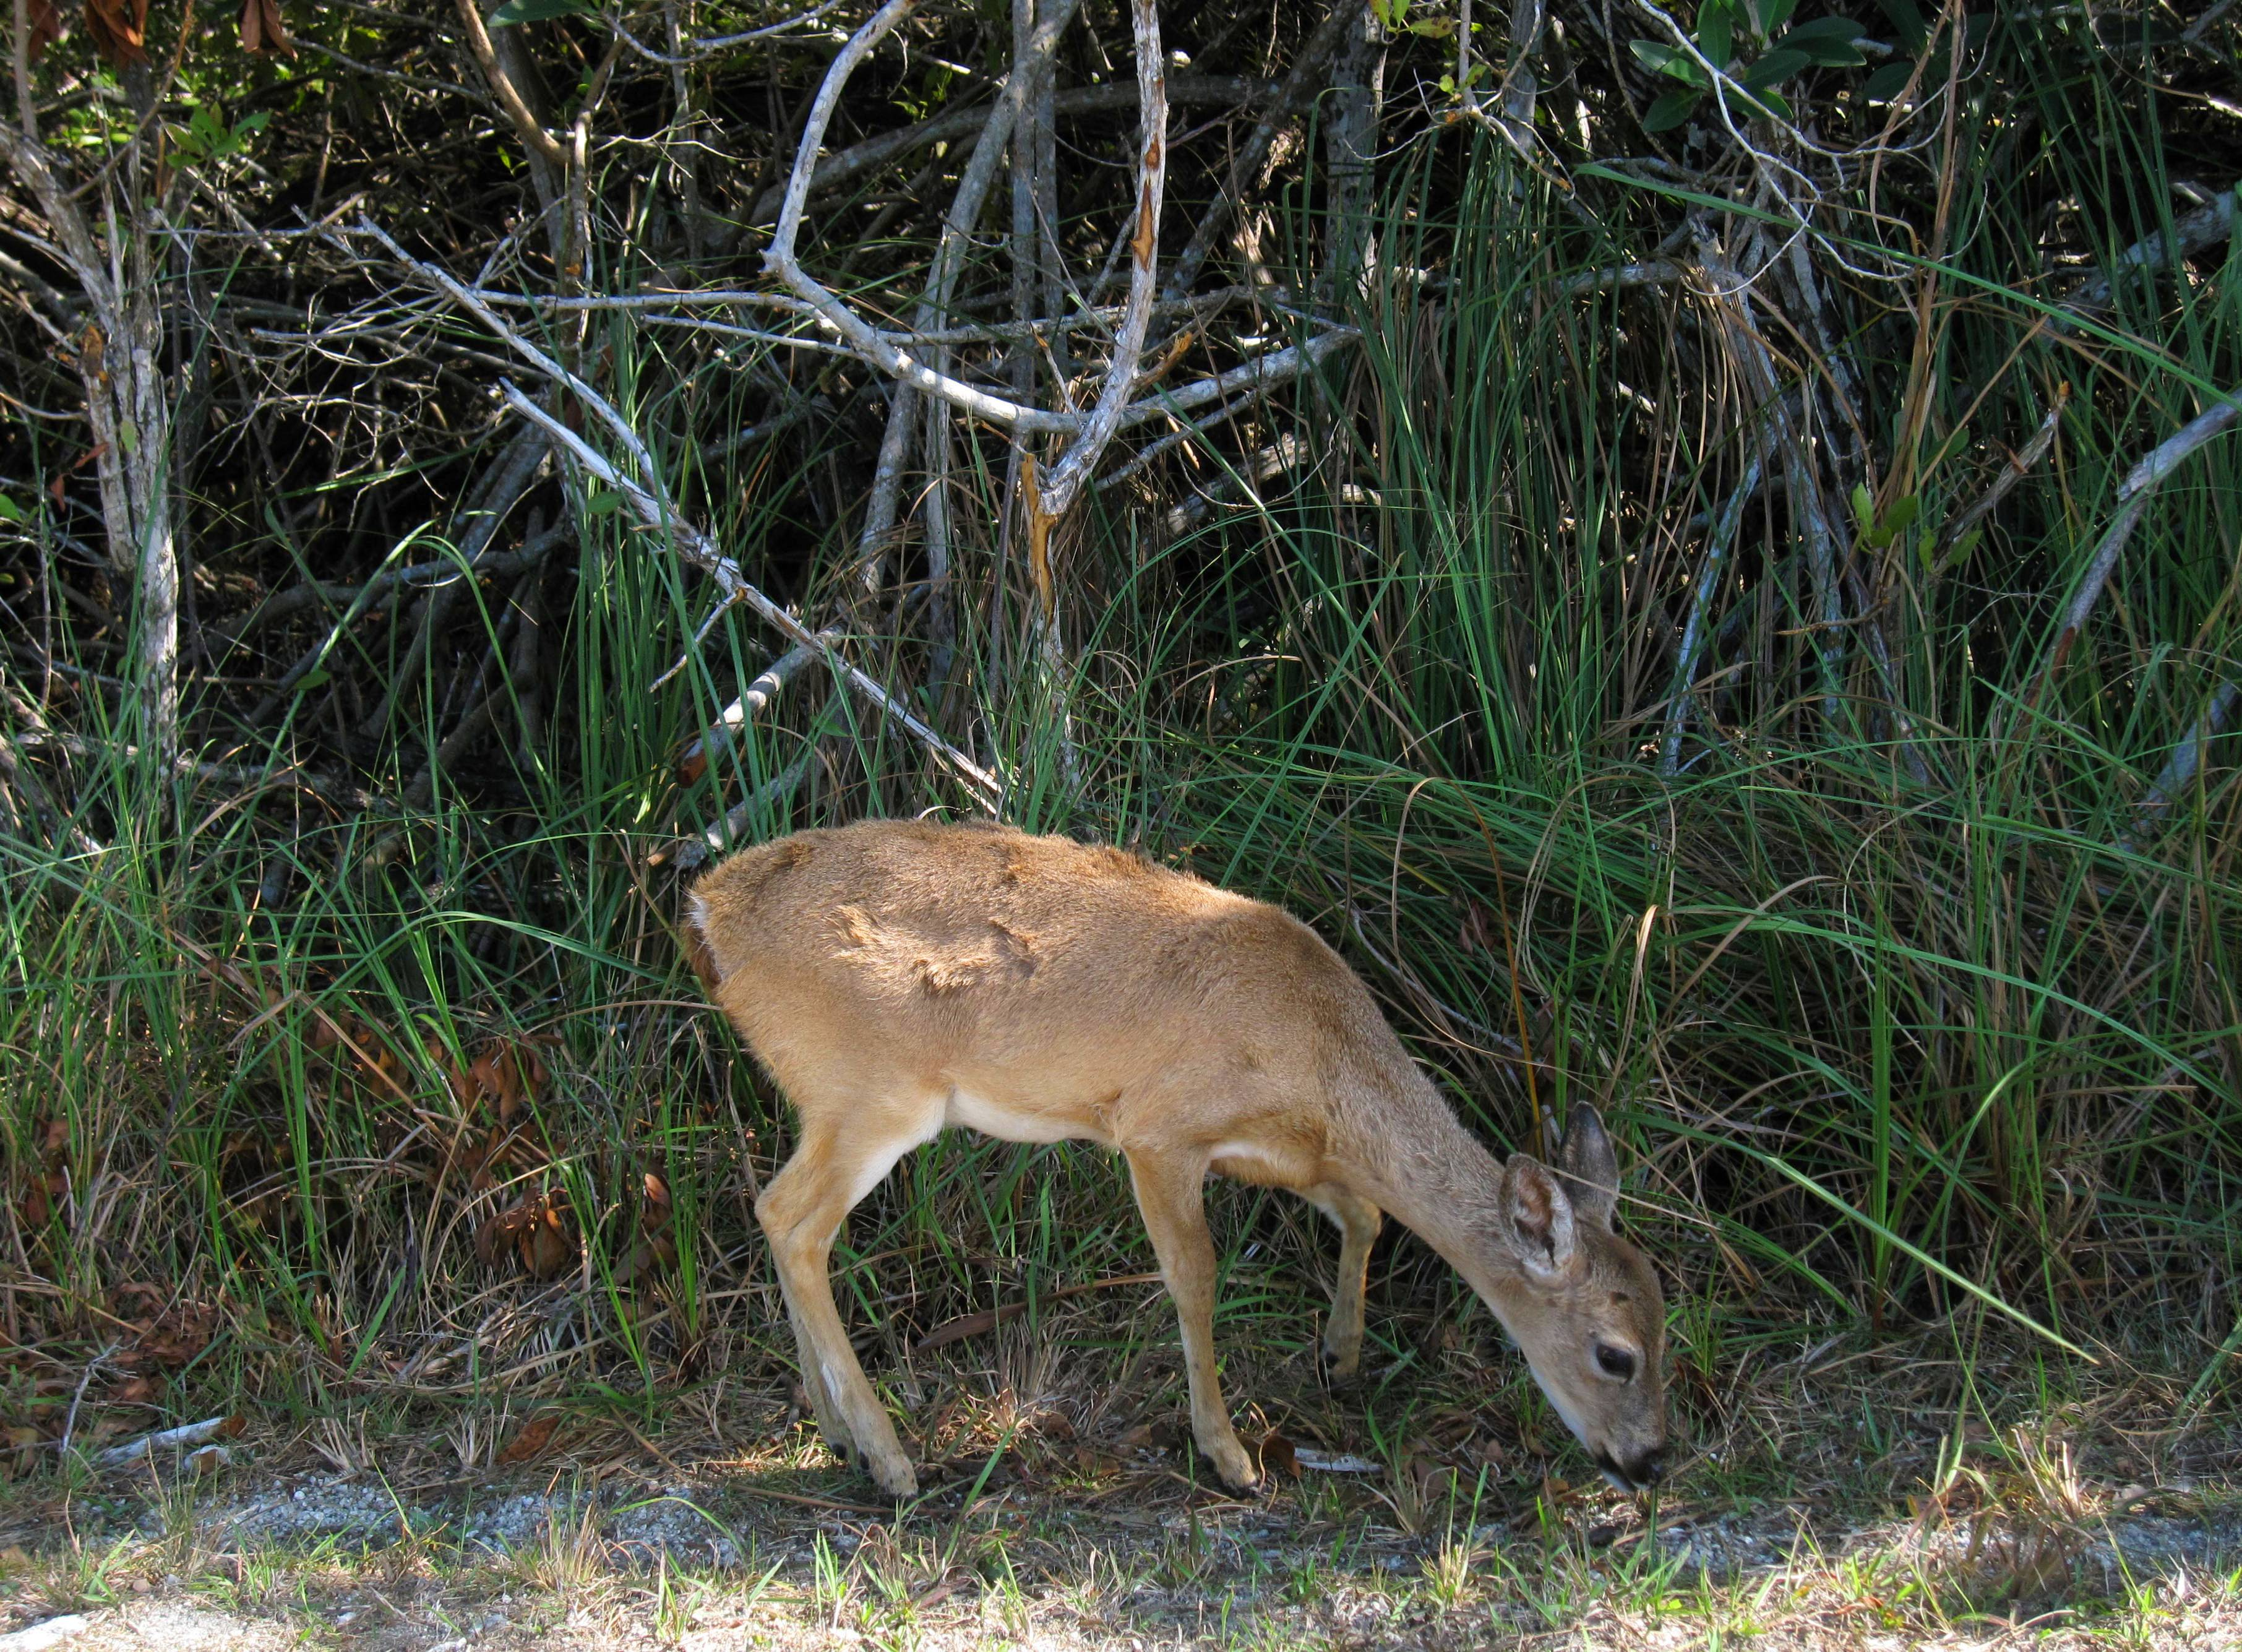 It's not unusual to spot the endangered Key deer by the side of the road or wandering on trails in the 8,000-acre National Key Deer Refuge in the vicinity of Big Pine and No Name Keys in Florida.